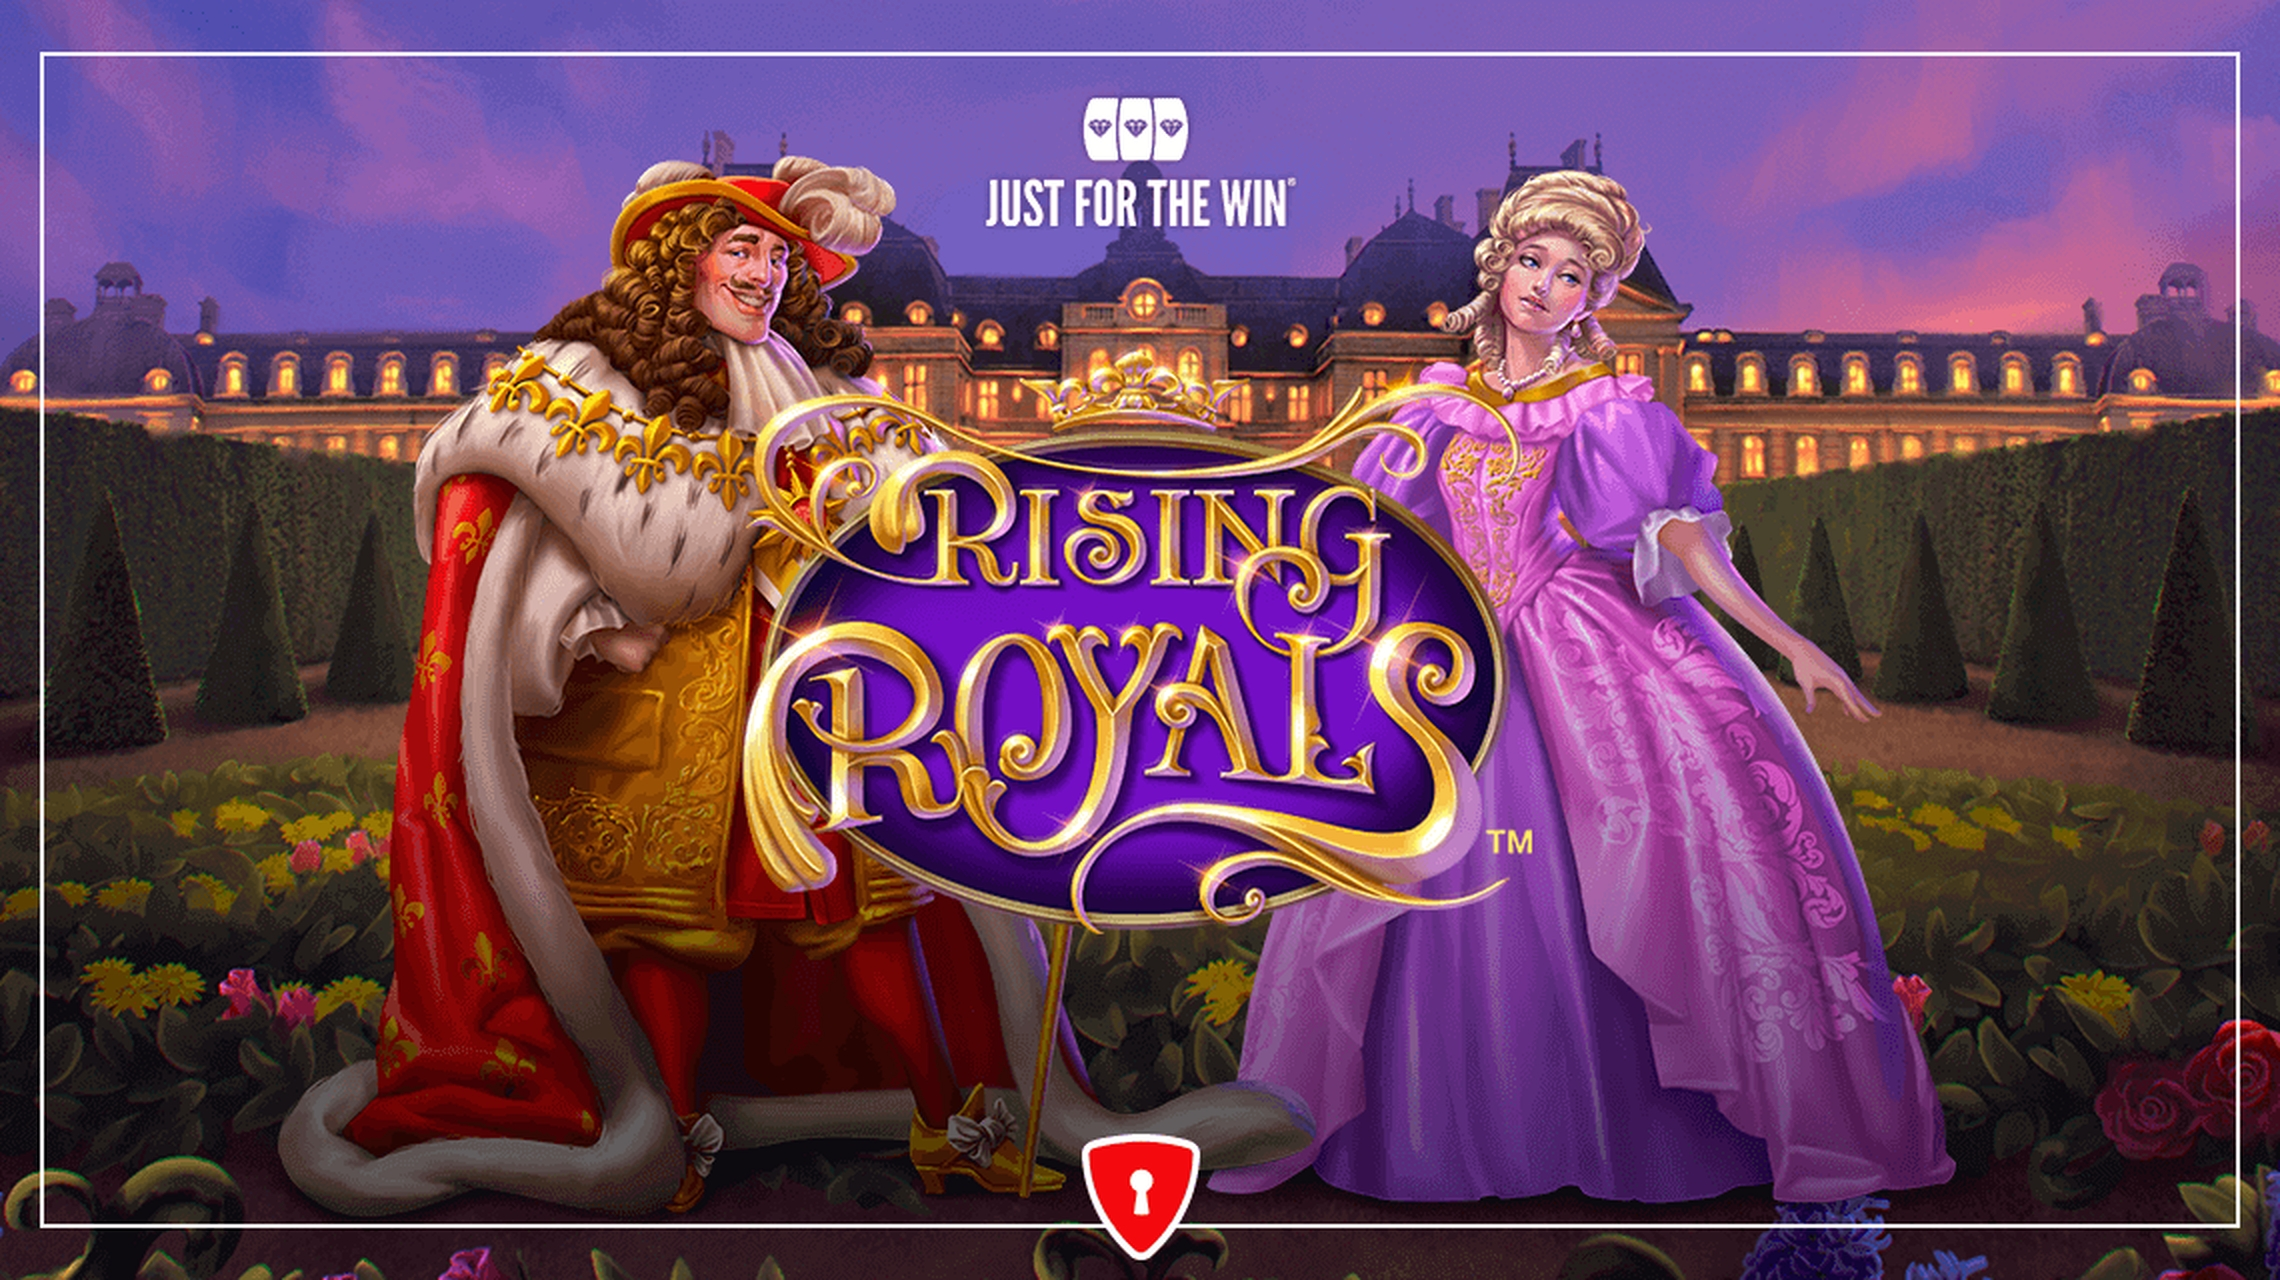 Win Money in Rising Royals Free Slot Game by Just For The Win